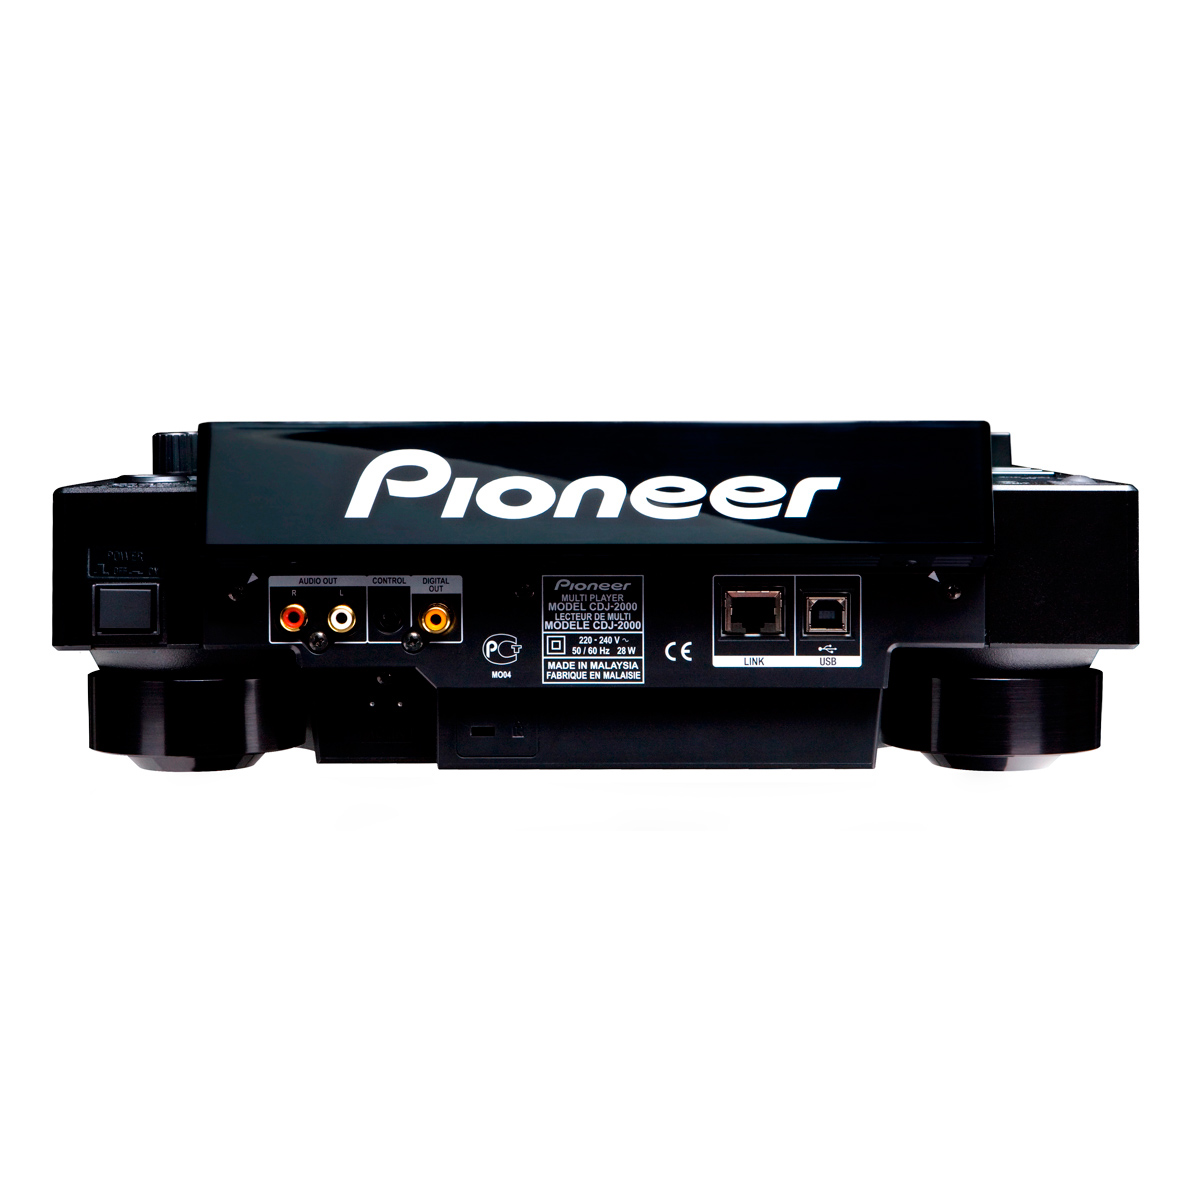 CDJ Player c/ USB CDJ 2000 - Pioneer